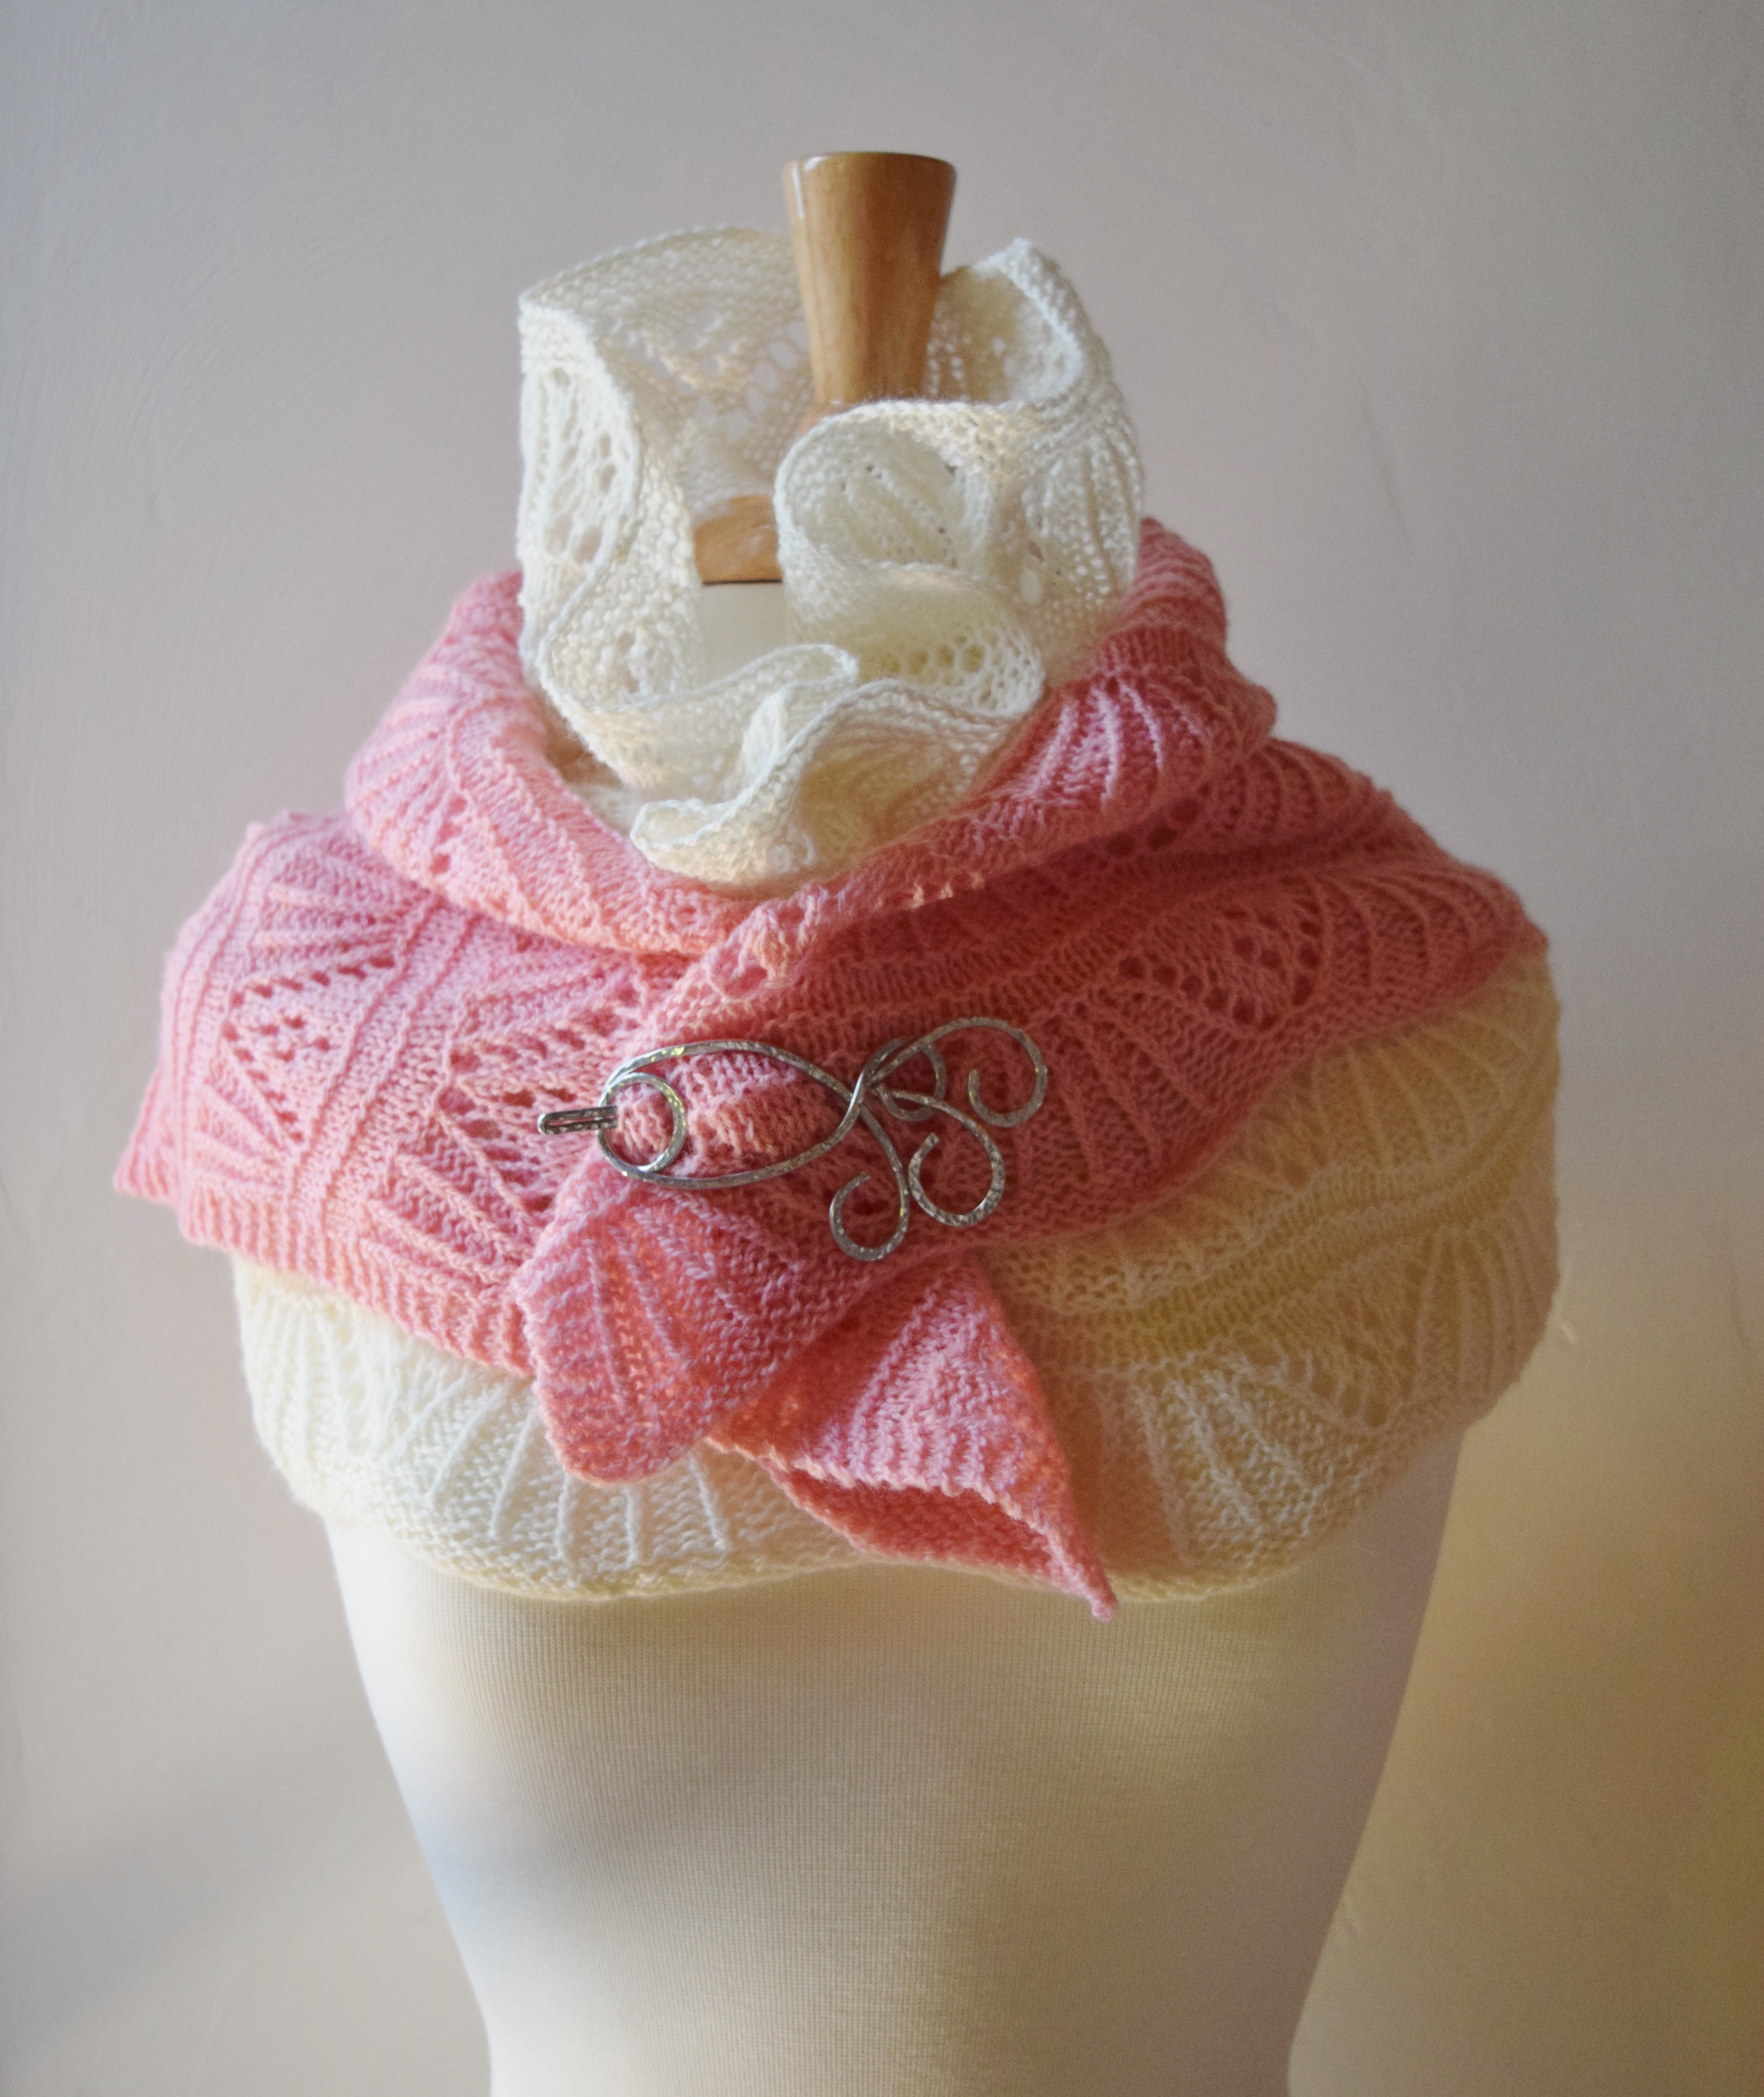 jenjoycedesign© small shawl & cowl together